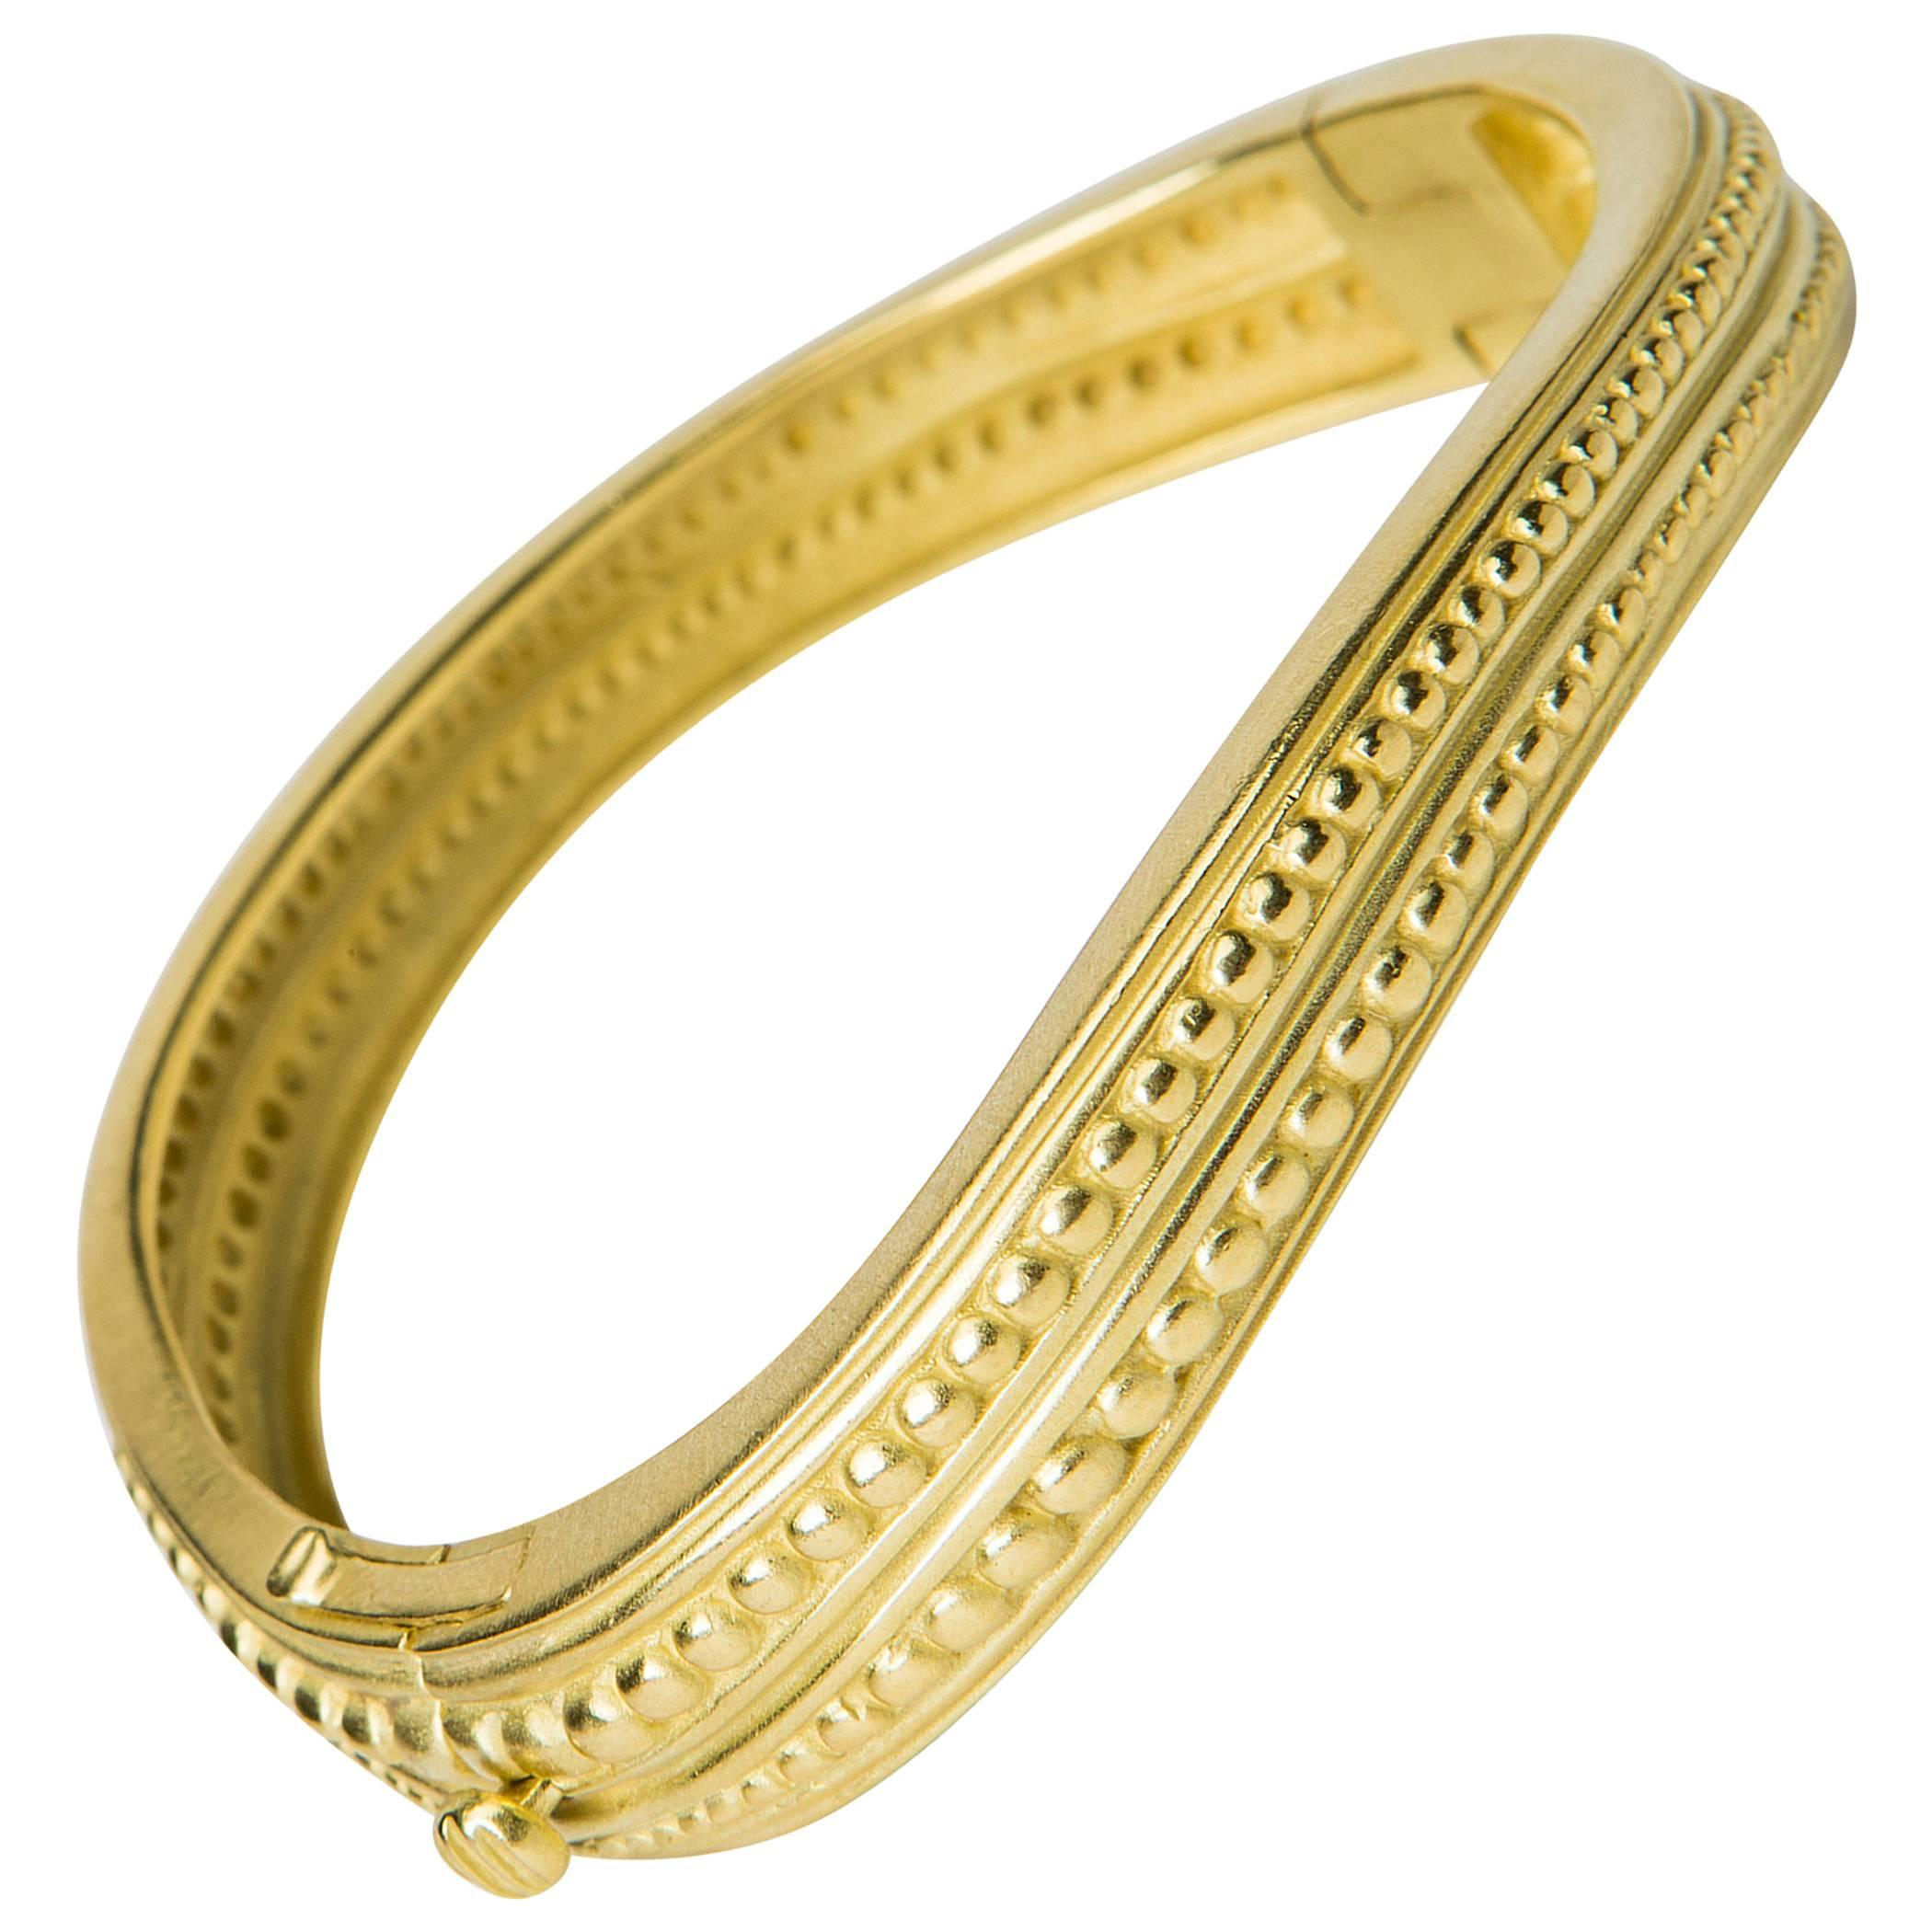 gold jewelry bracelets yossi jane stack bargen von s tribe harari bangle product bangles